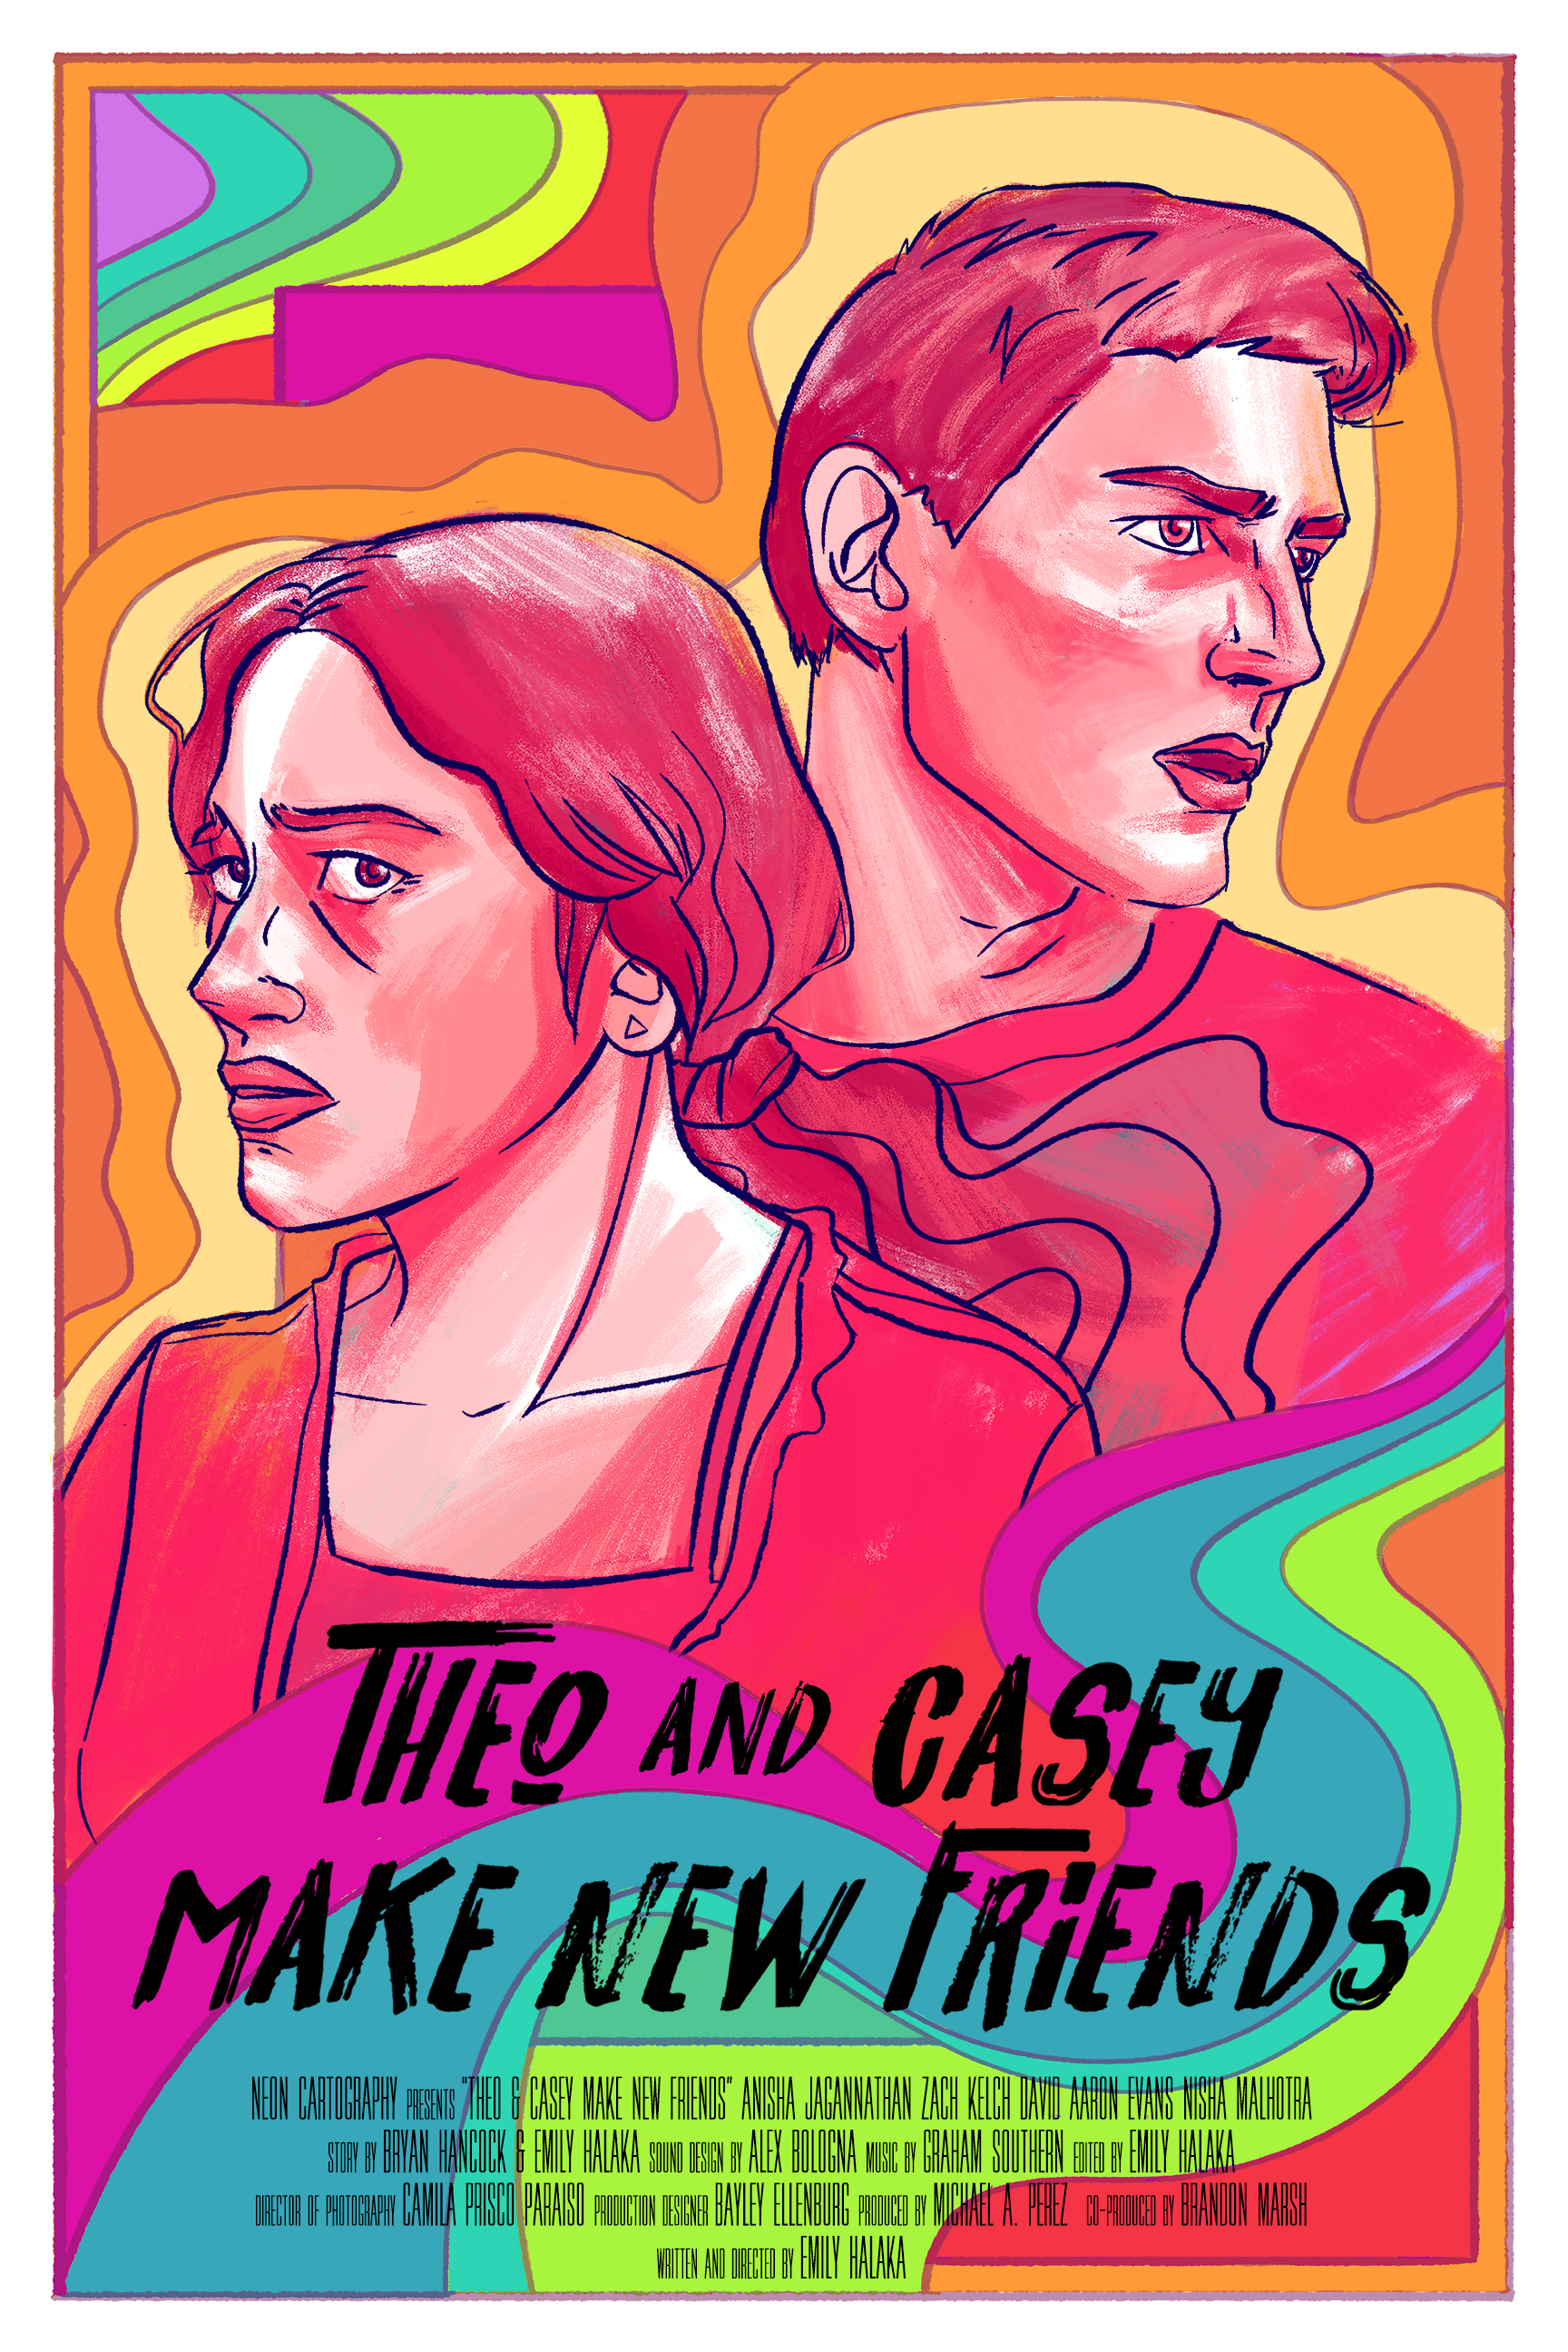 Theo and Casey Make New Friends - Directed by Emily HalakaCinematographer